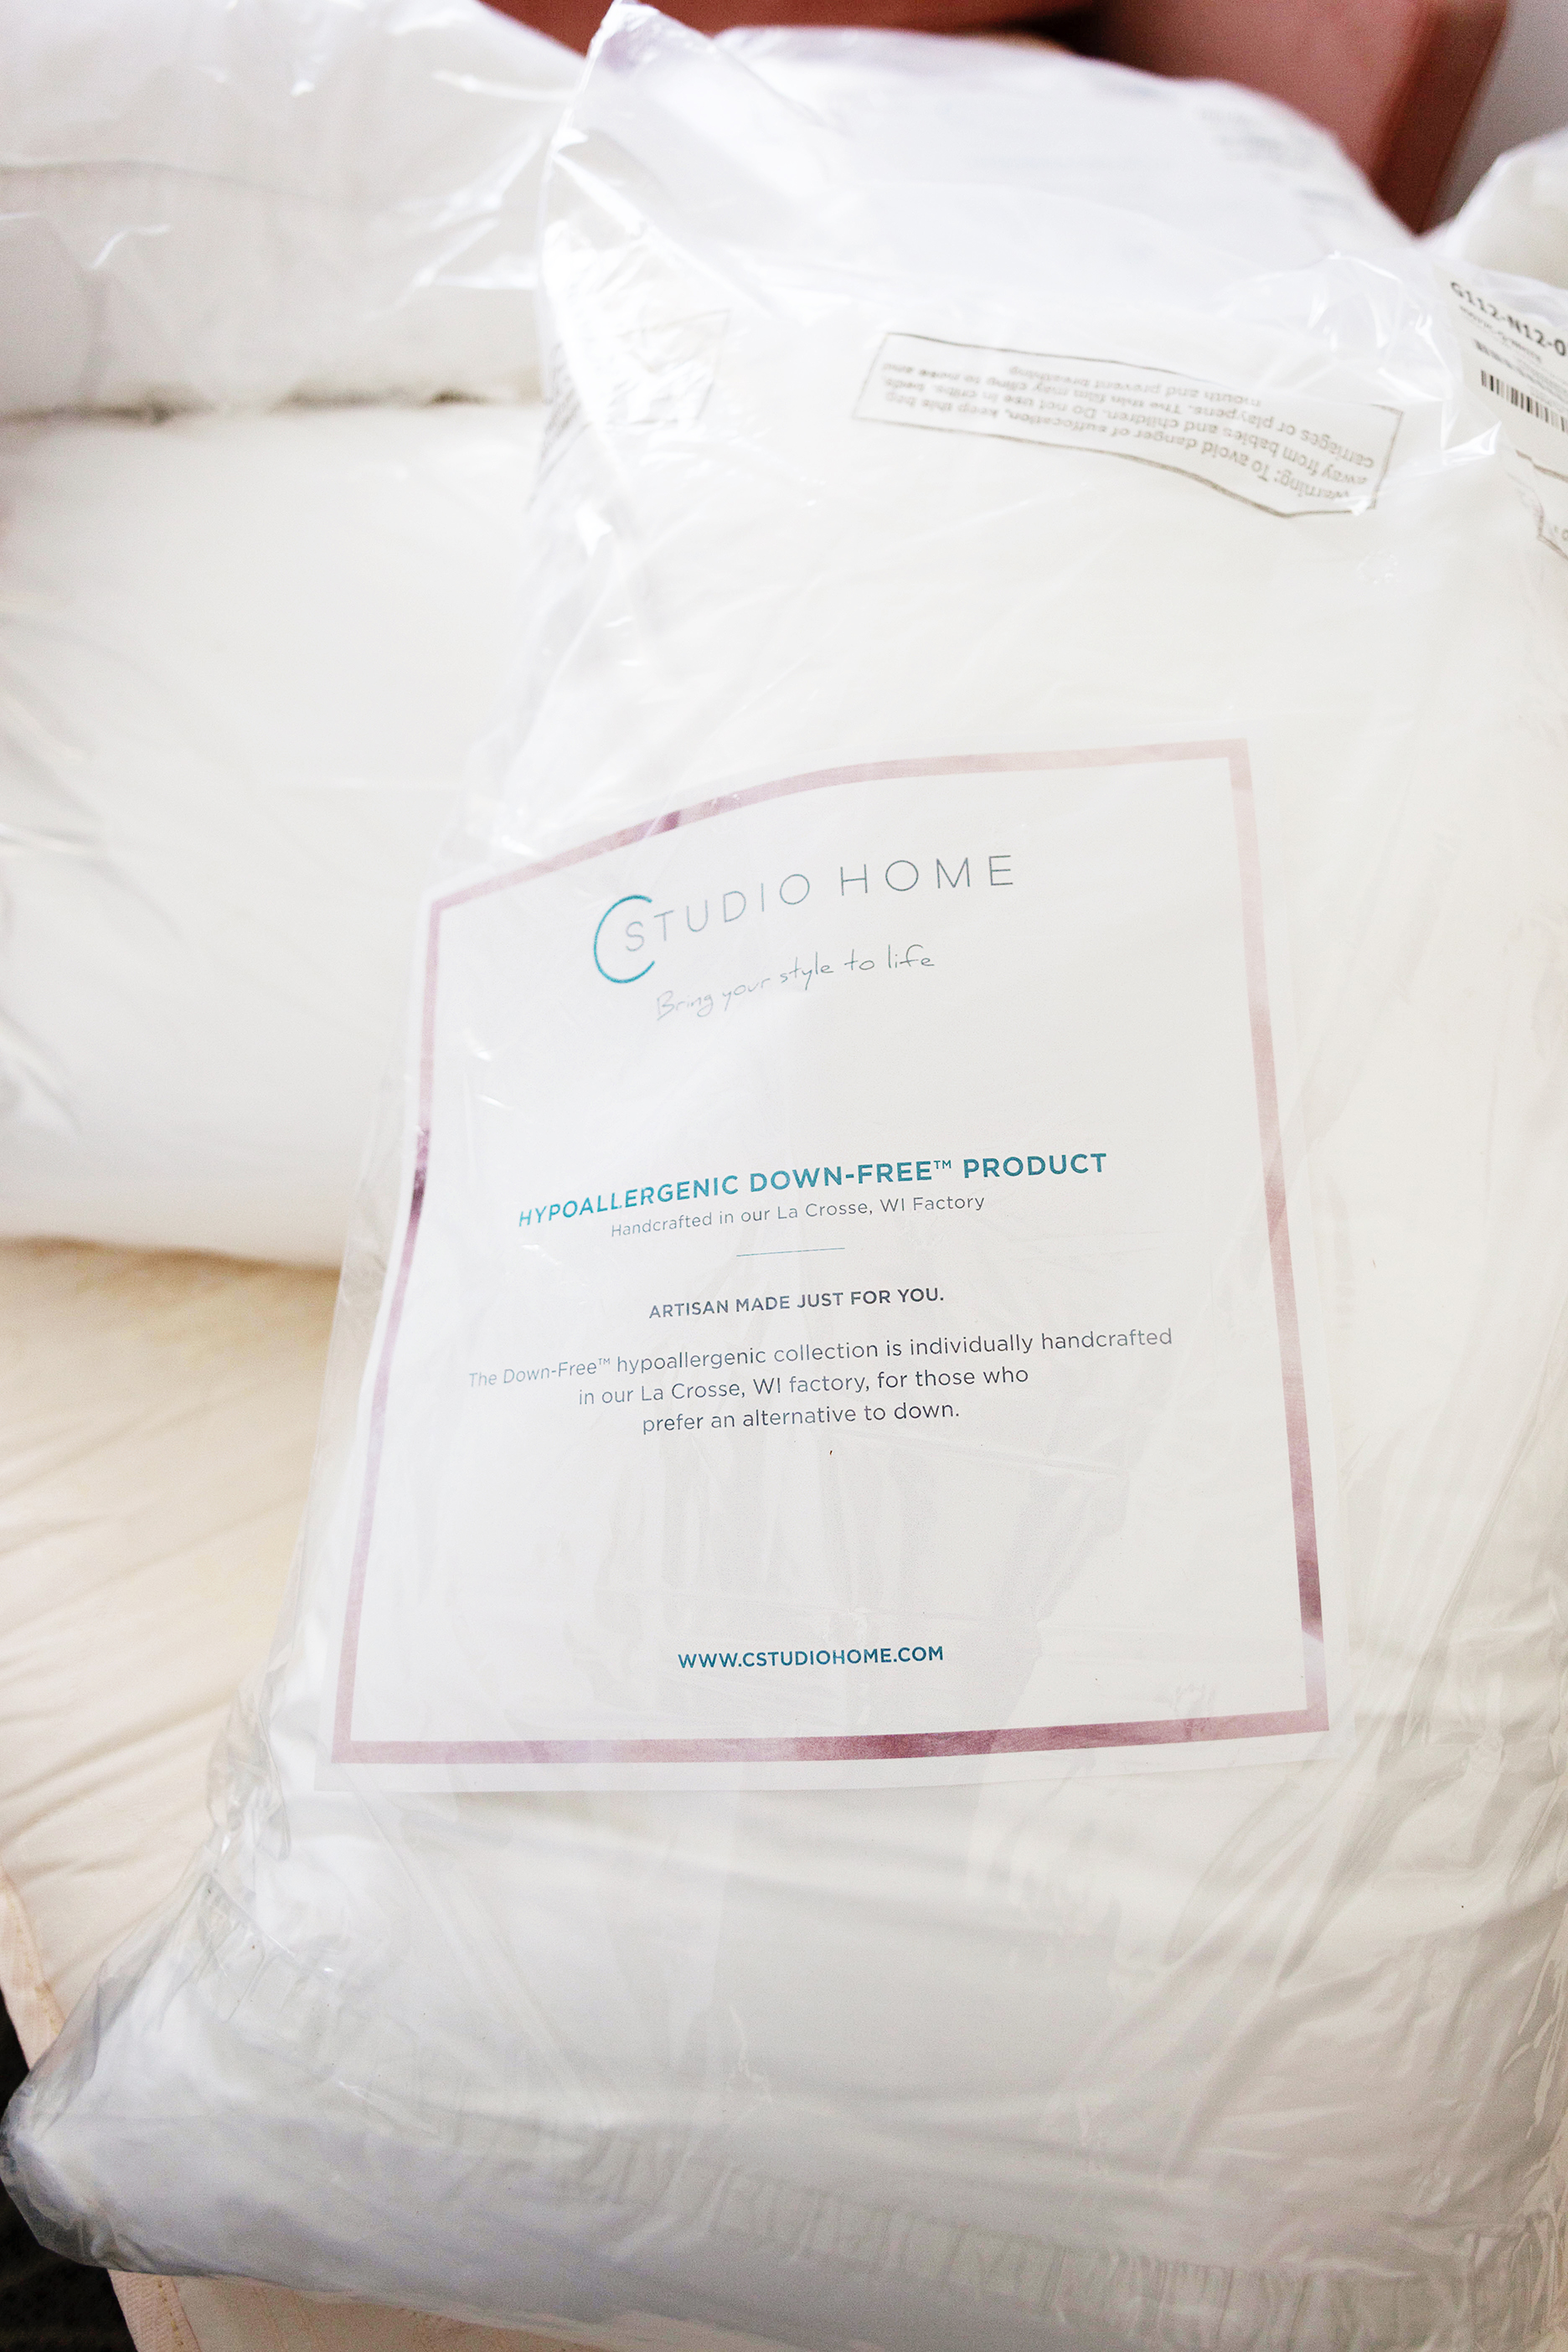 Responsible Down bedding from Cstudio Home-